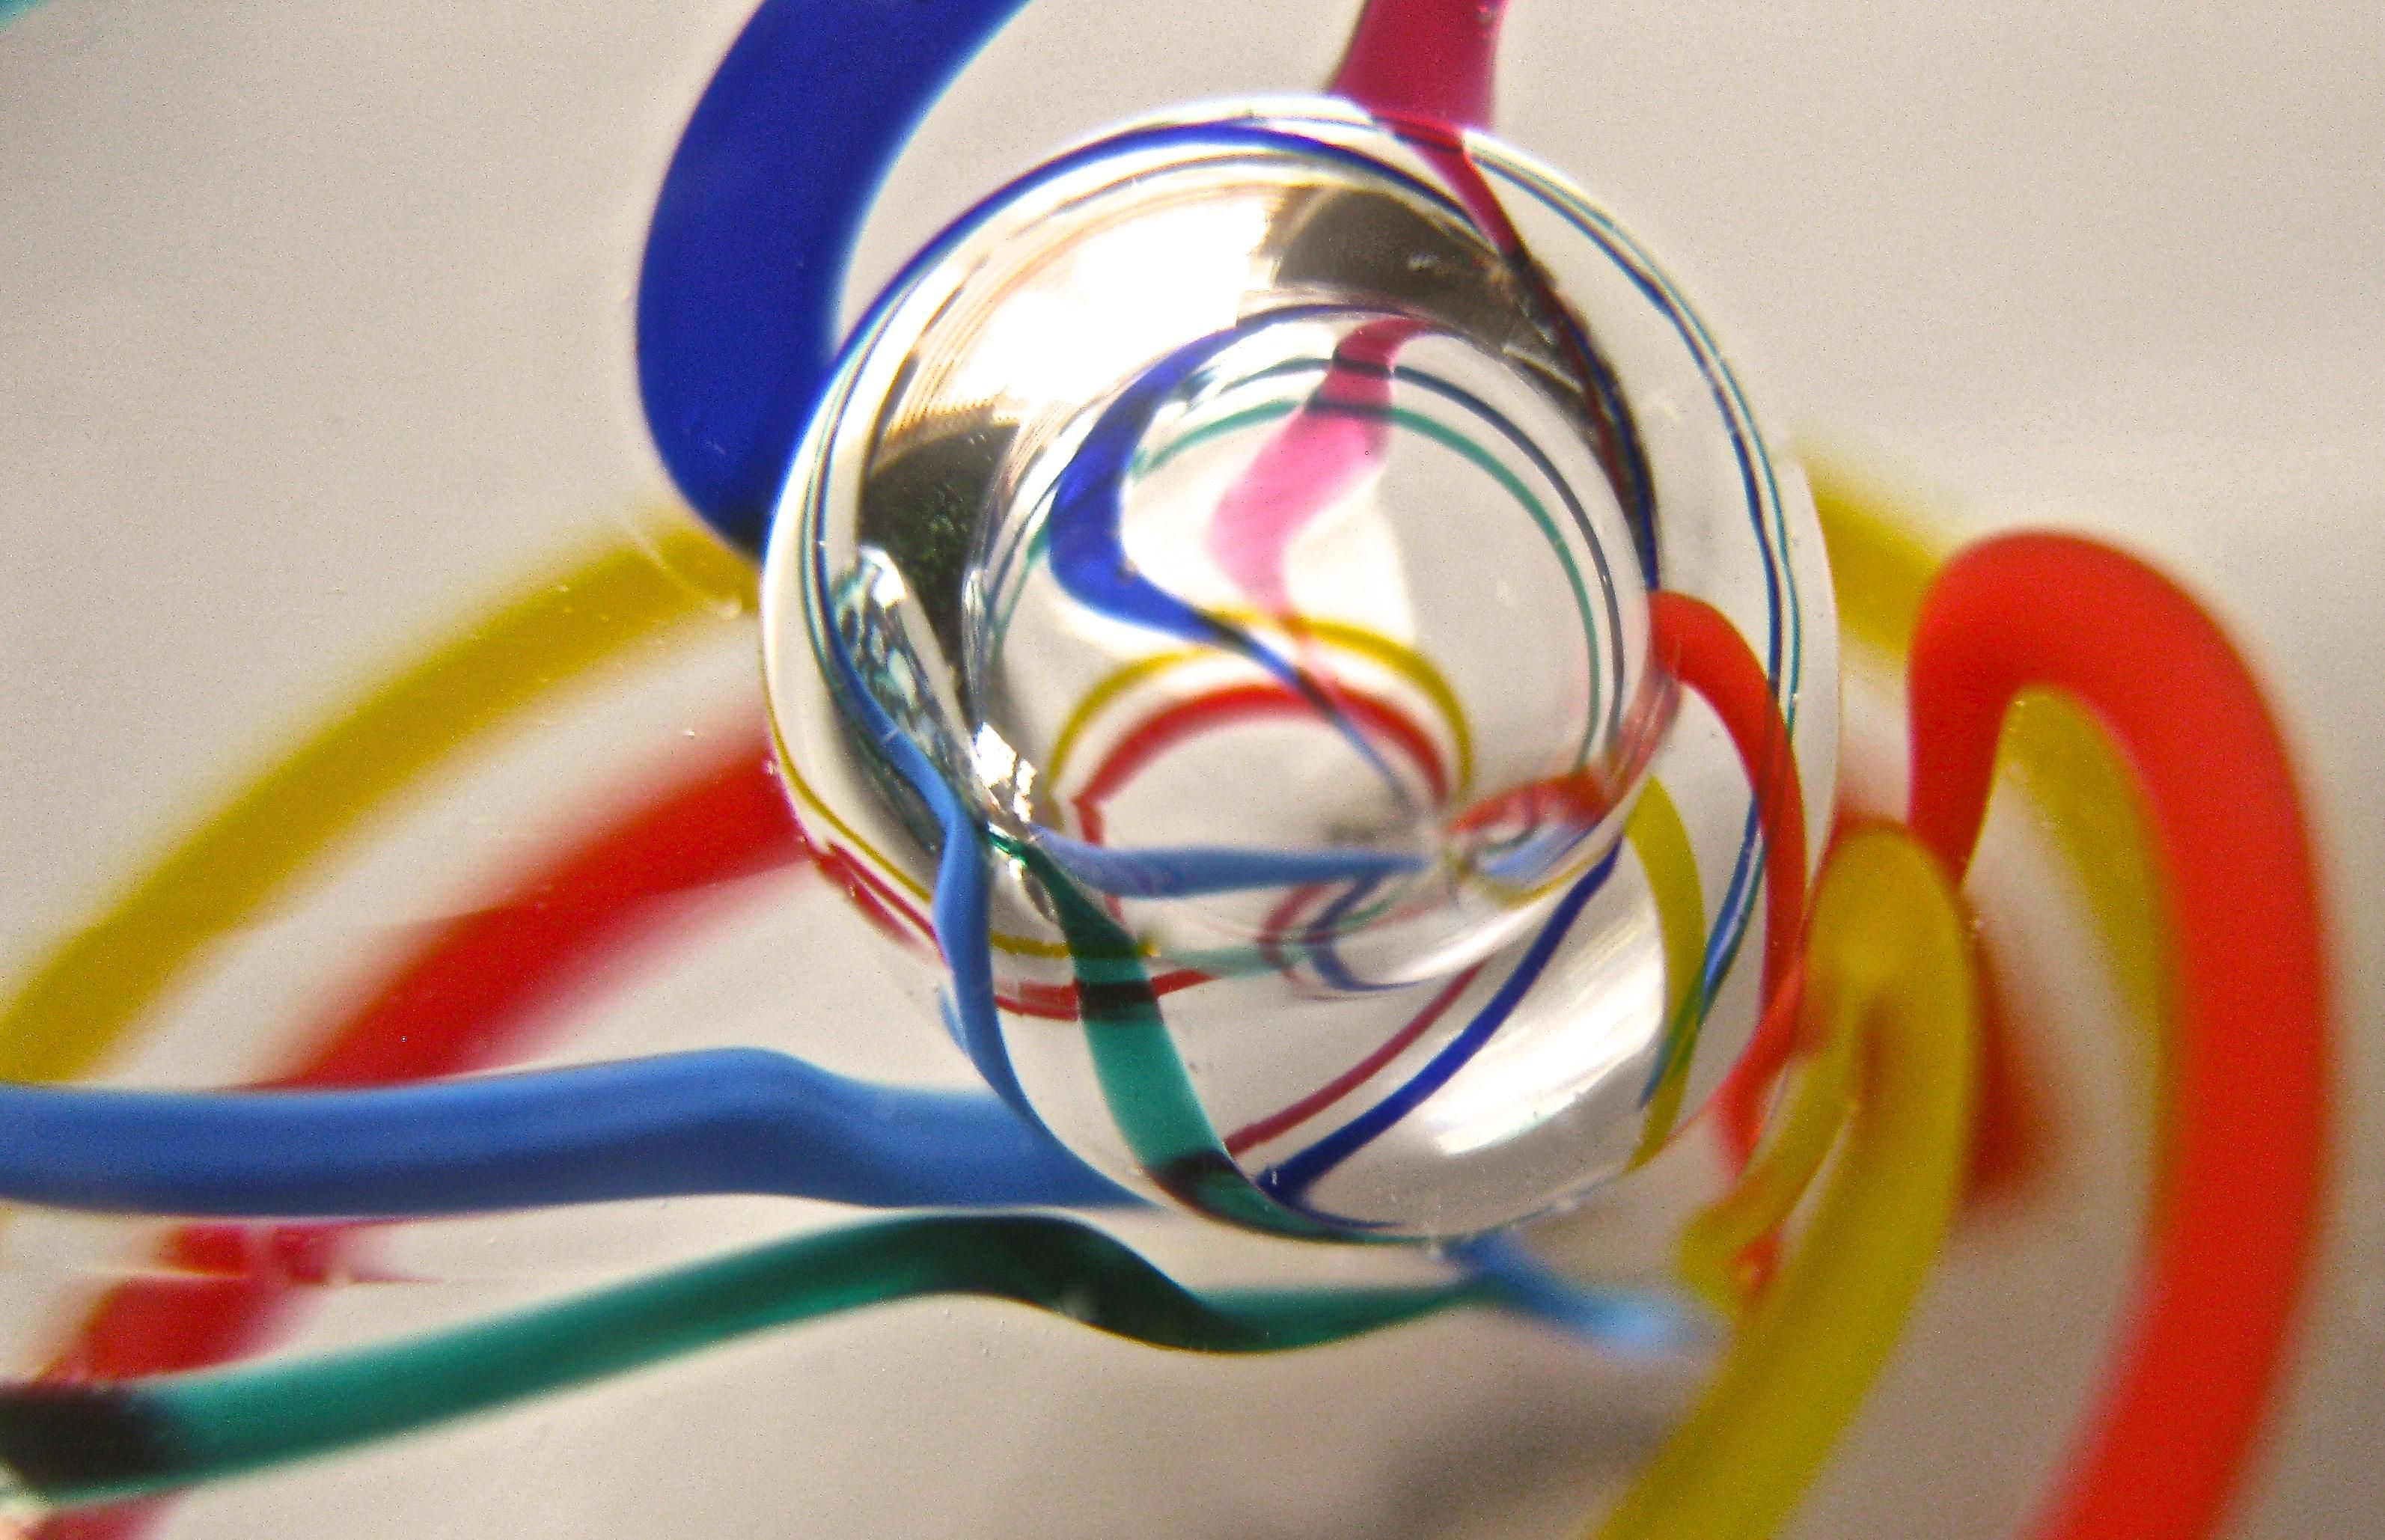 When spinning round and round in a miniature glass world be careful where you step off.